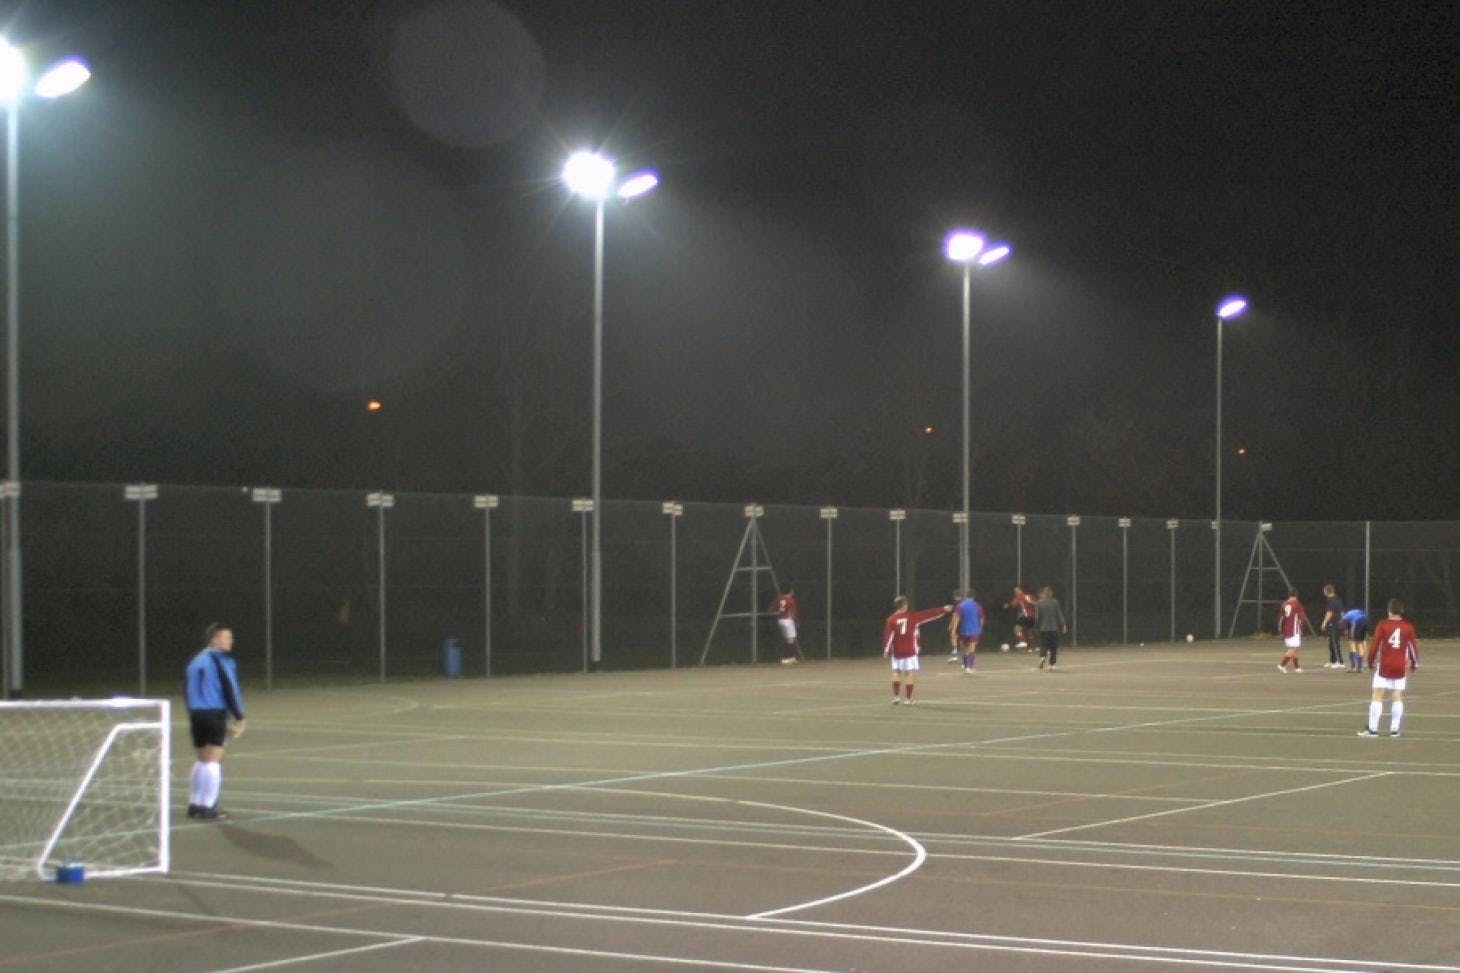 Grasshoppers Rugby Club Outdoor | Hard (macadam) netball court